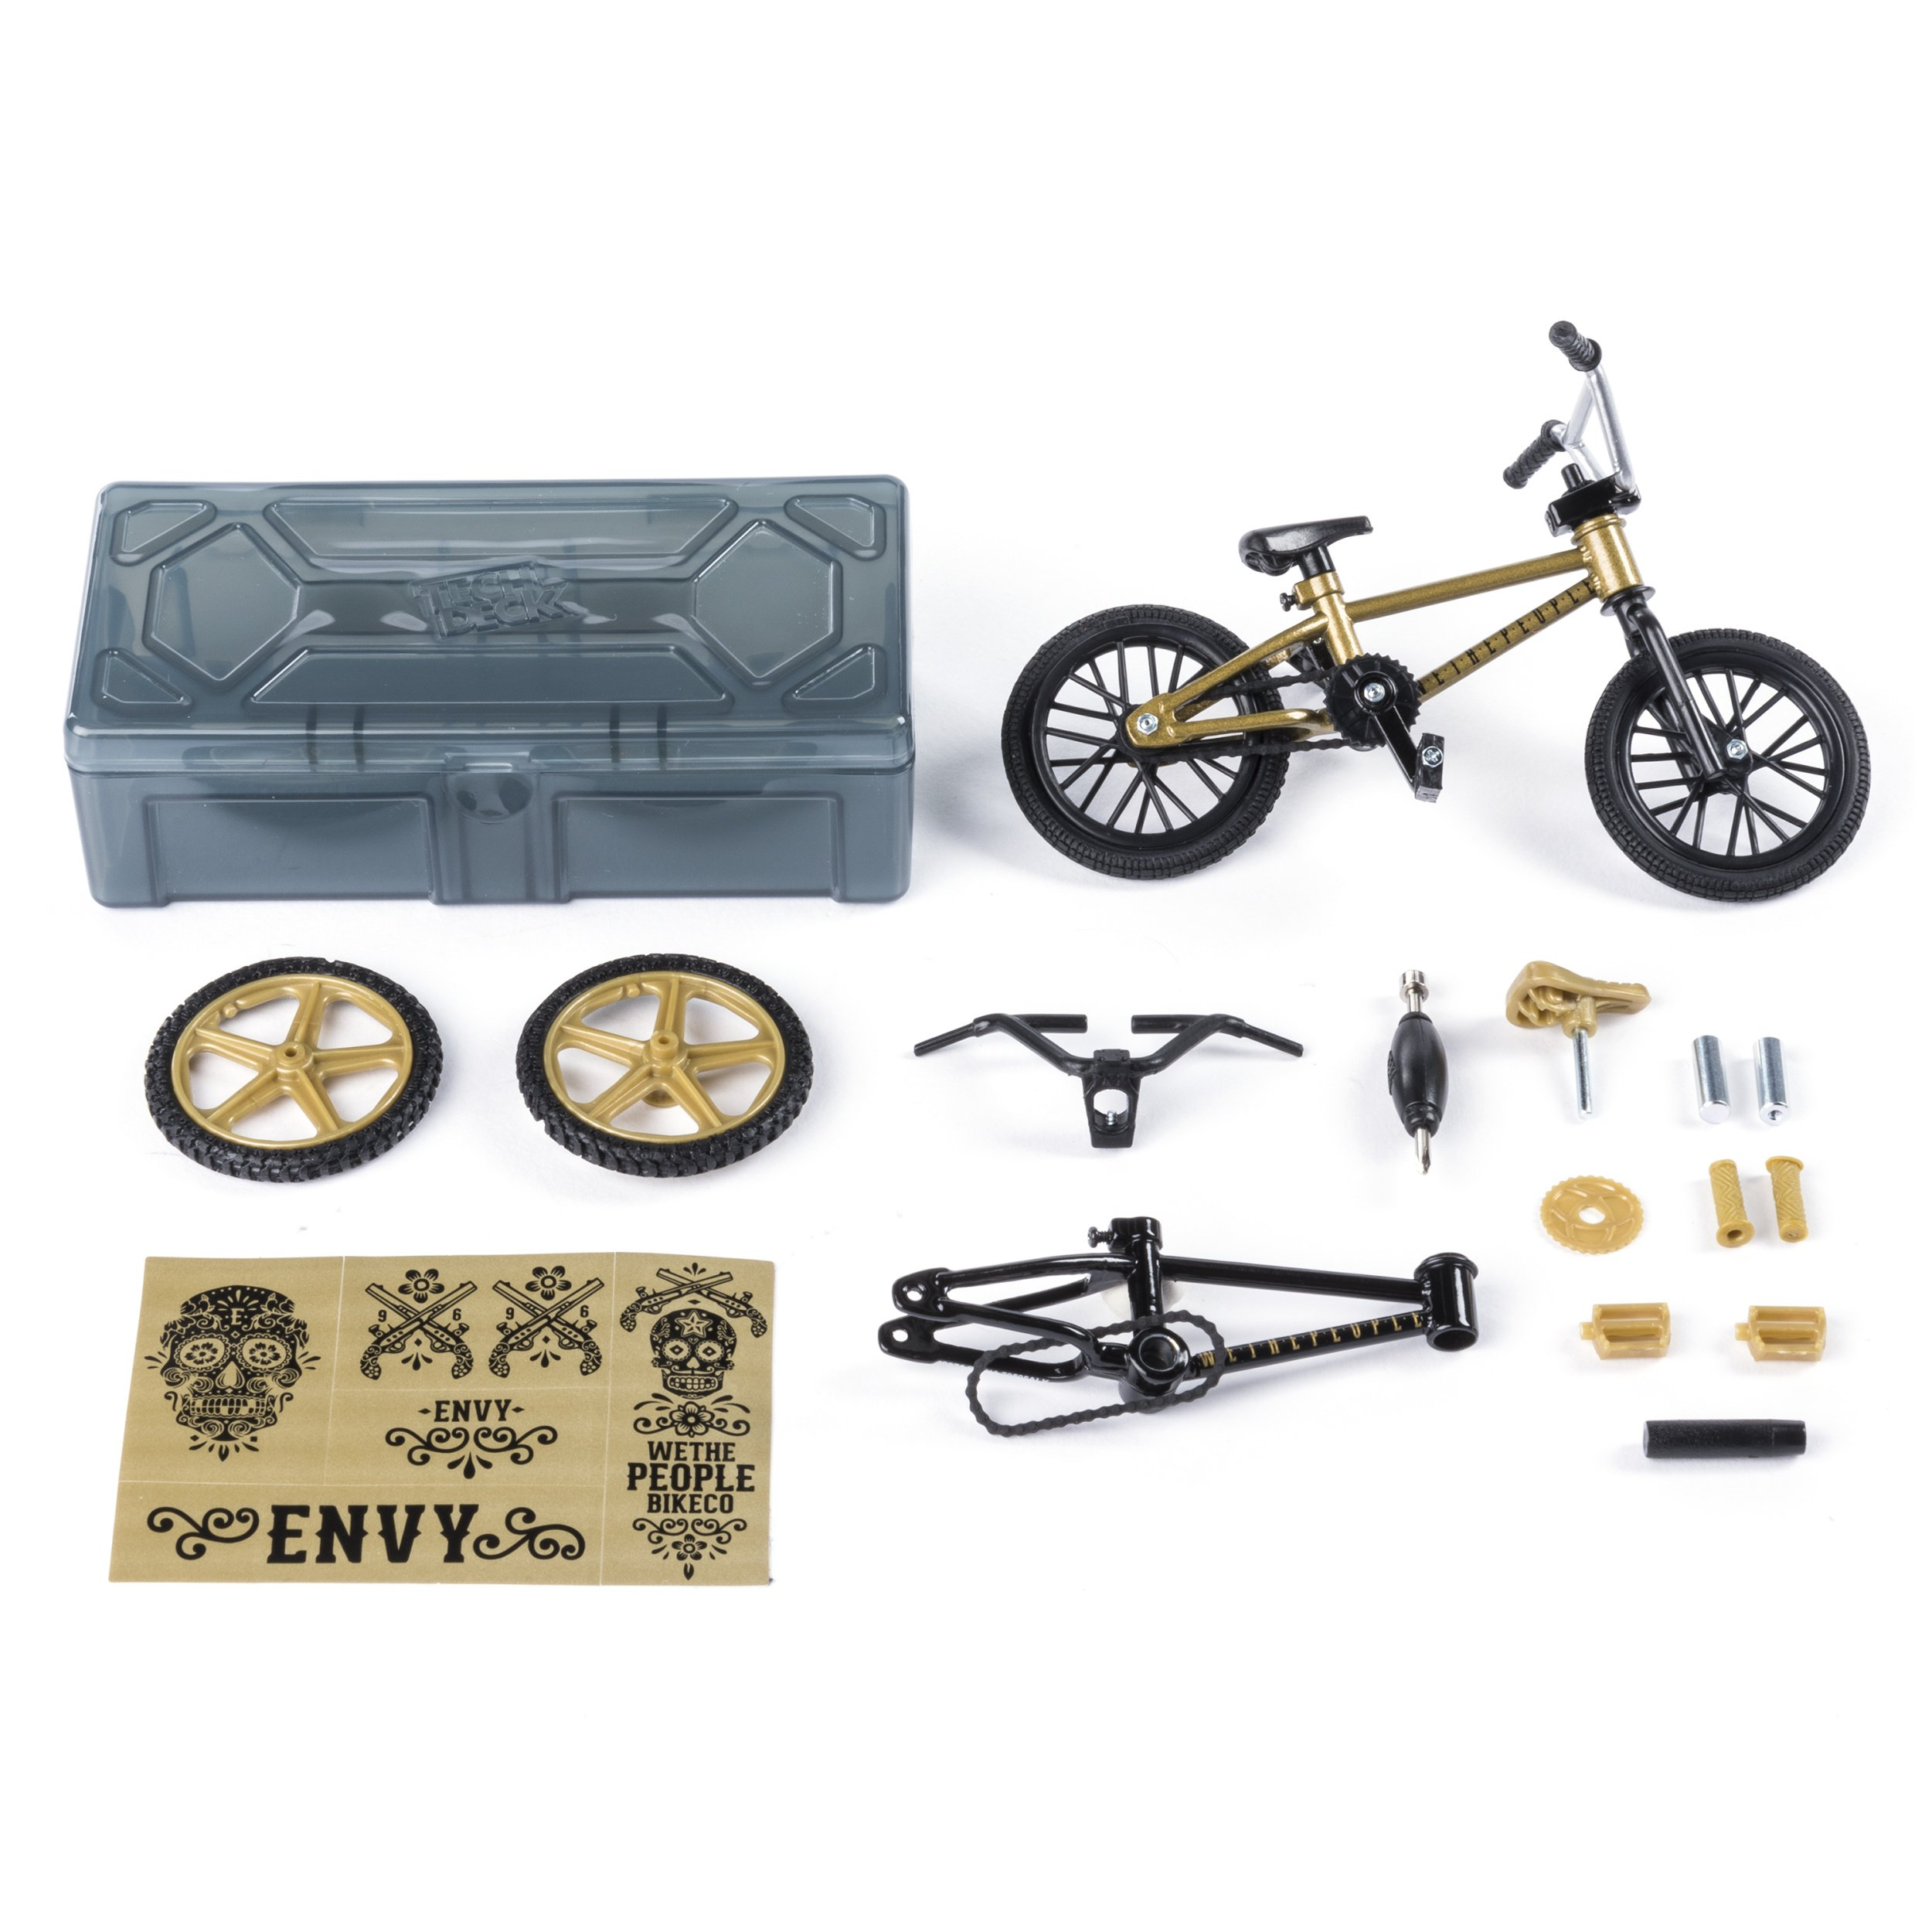 Tech Deck - BMX Bike Shop with Accessories and